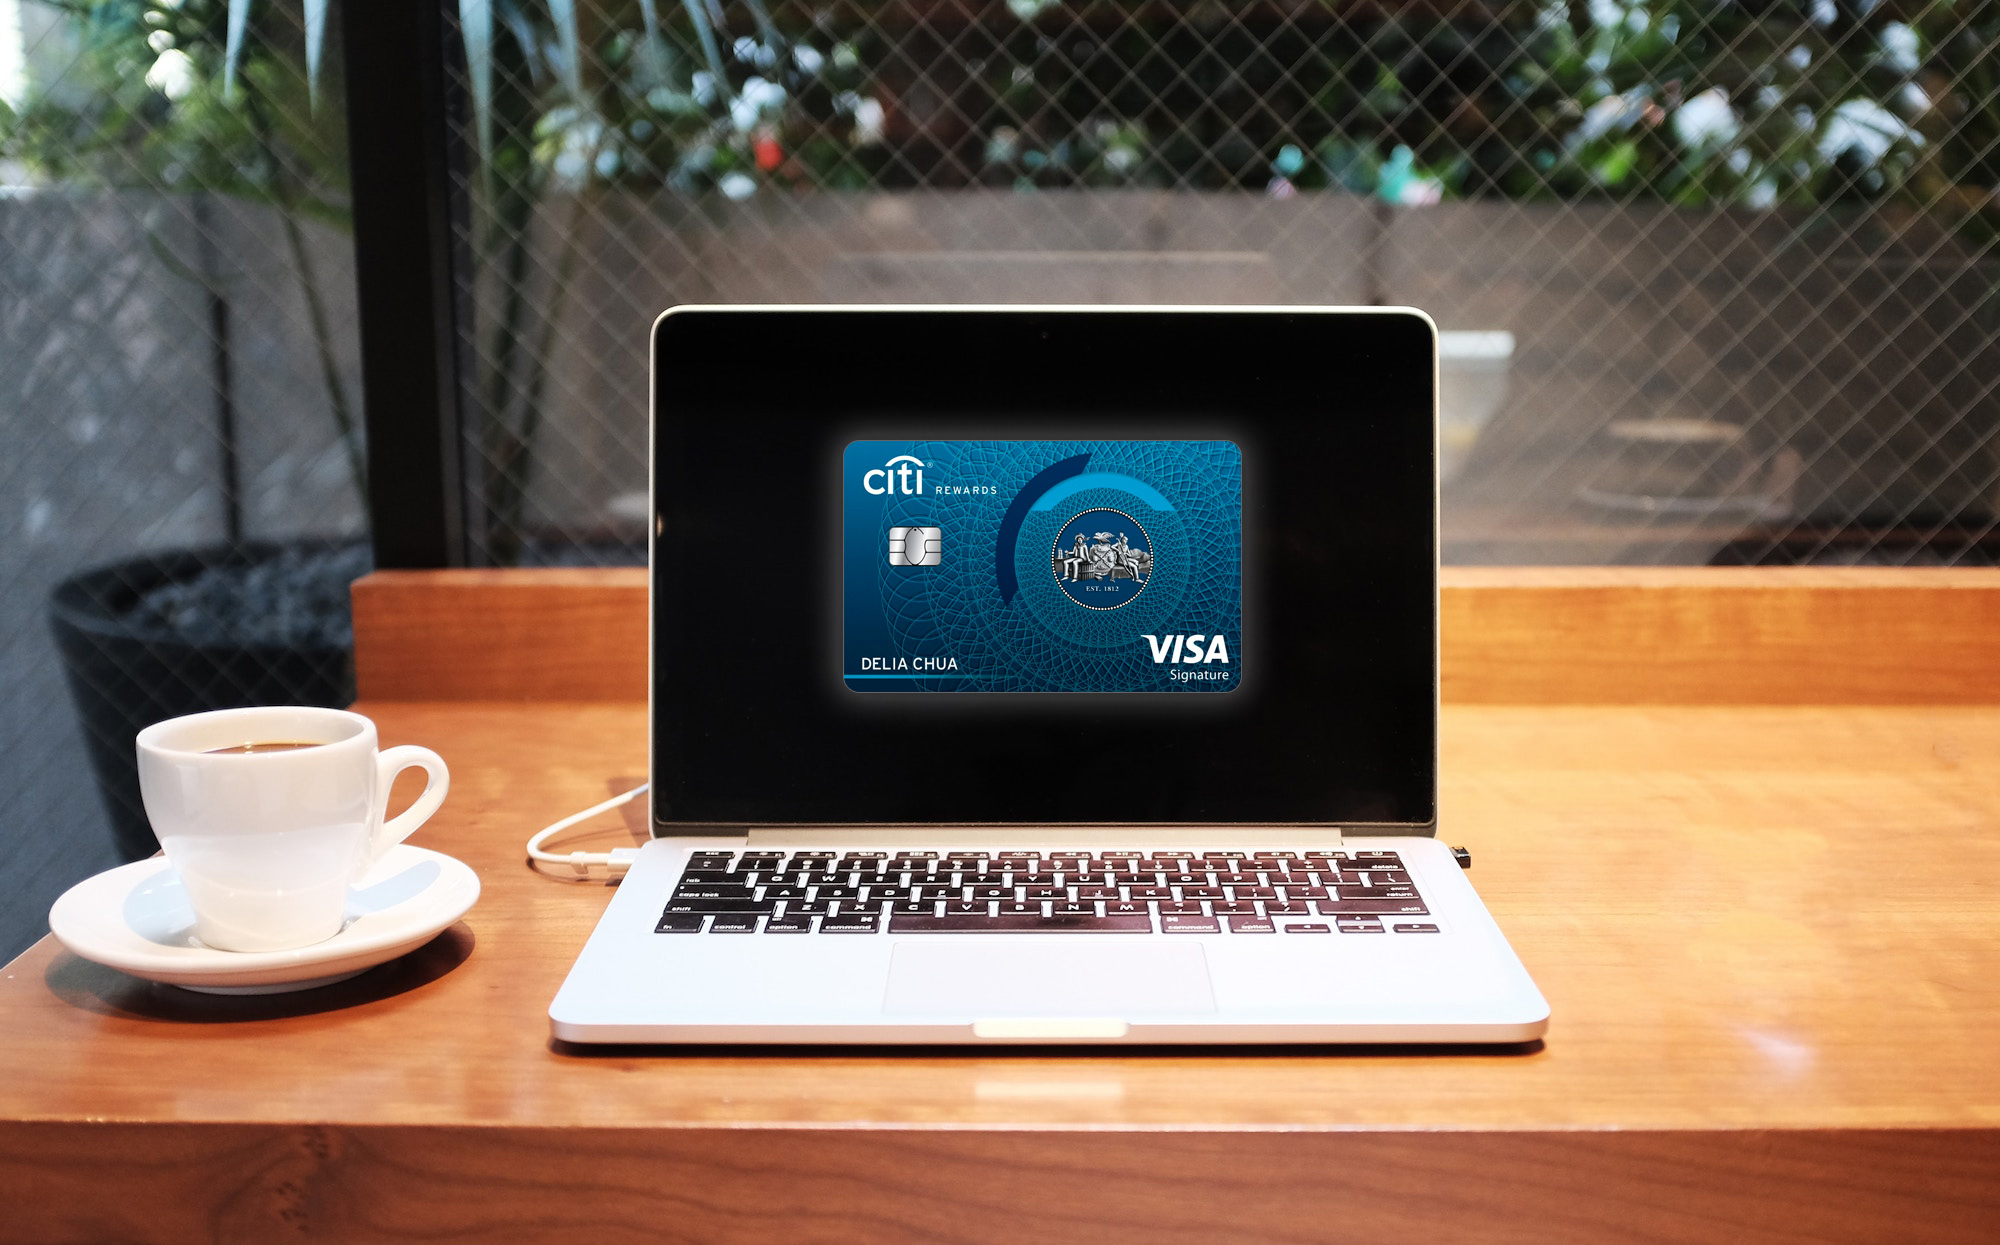 Earn 10,800 miles sign-up bonus with a new Citi Rewards card until January 2020